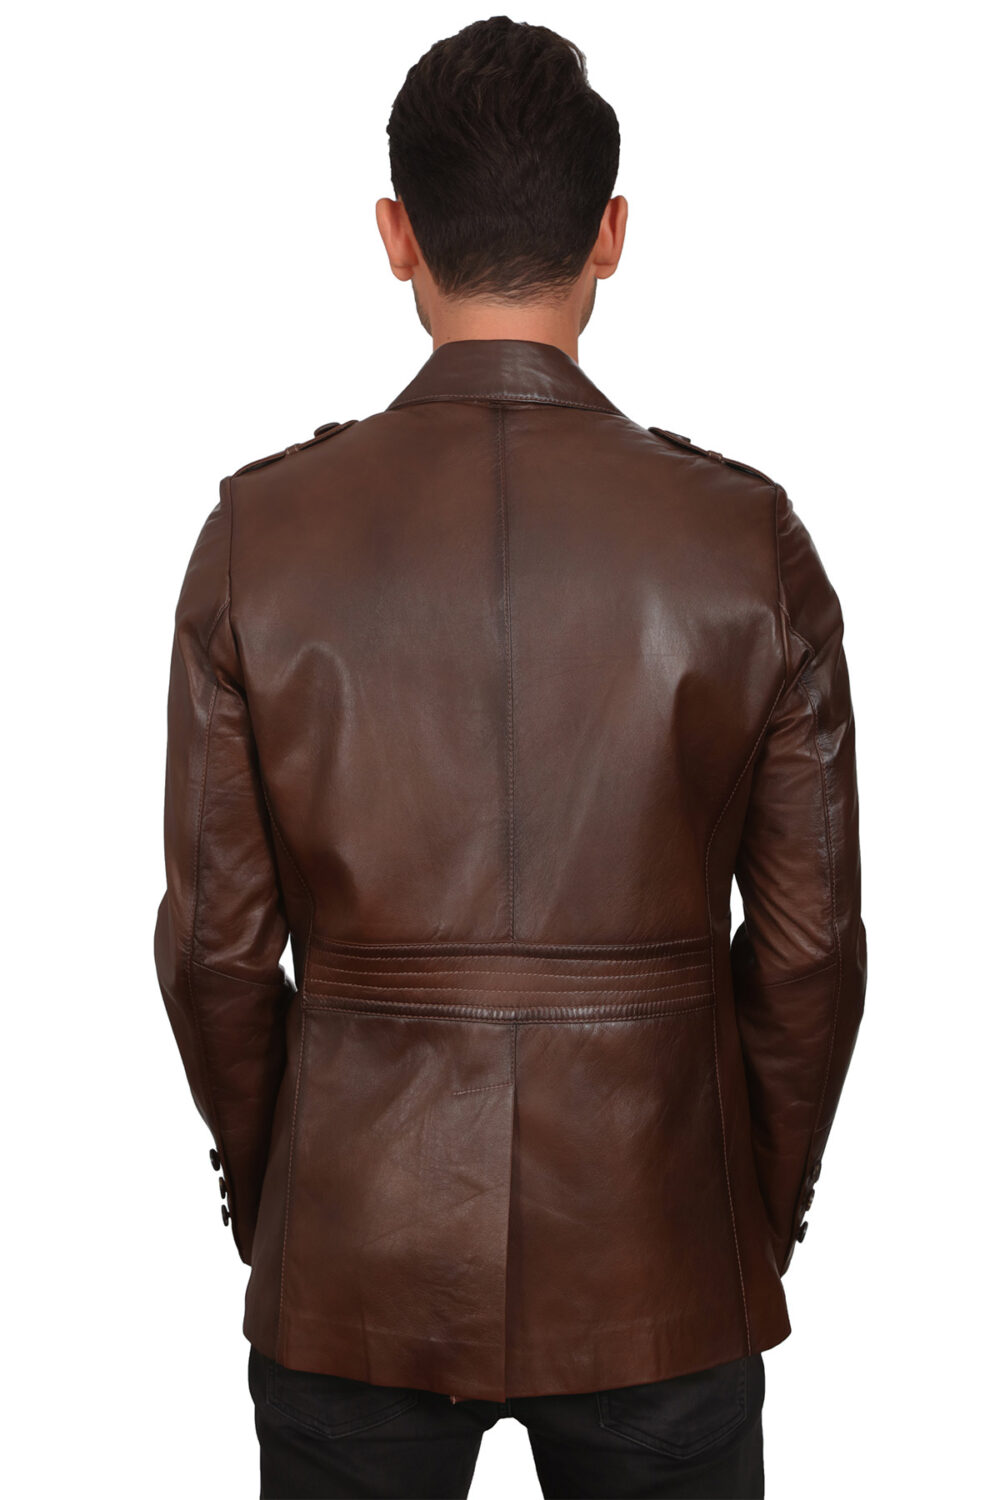 Mens Leather Jacket Near Me